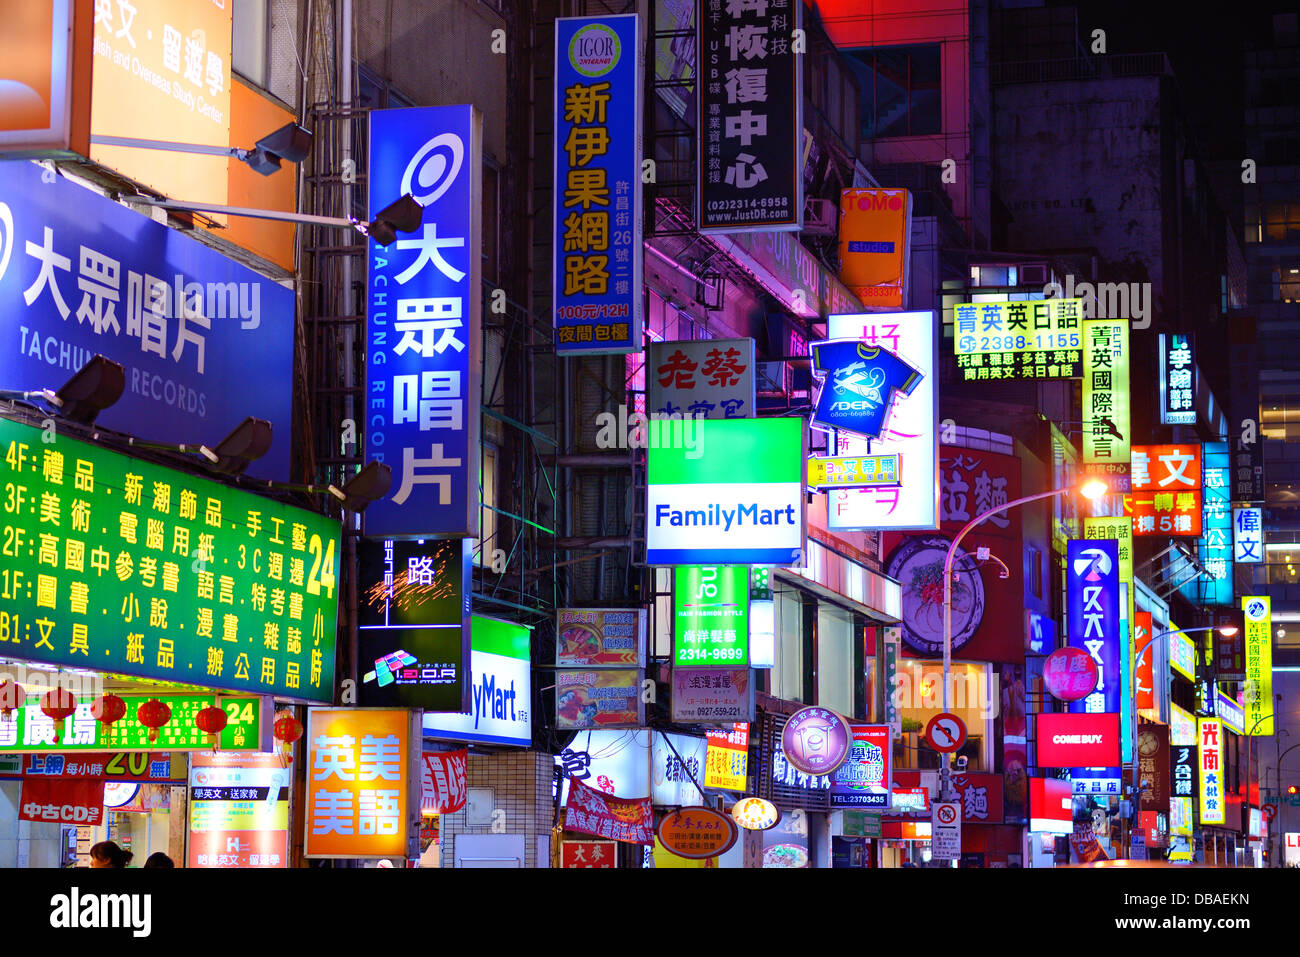 Neon Signs in Taipei, Taiwan. - Stock Image